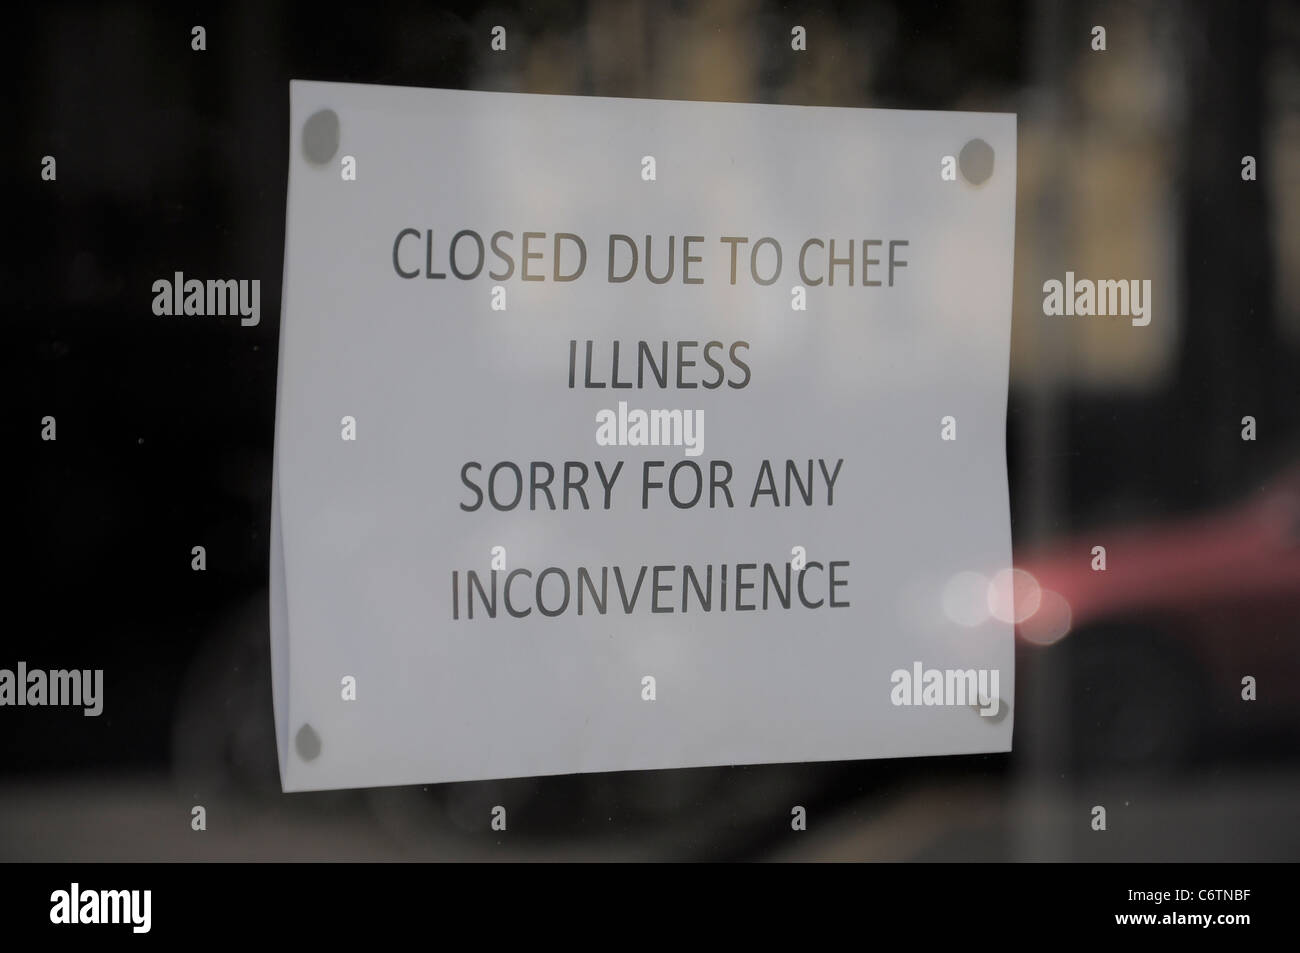 Closed notice in shopping window due to chef illness. - Stock Image